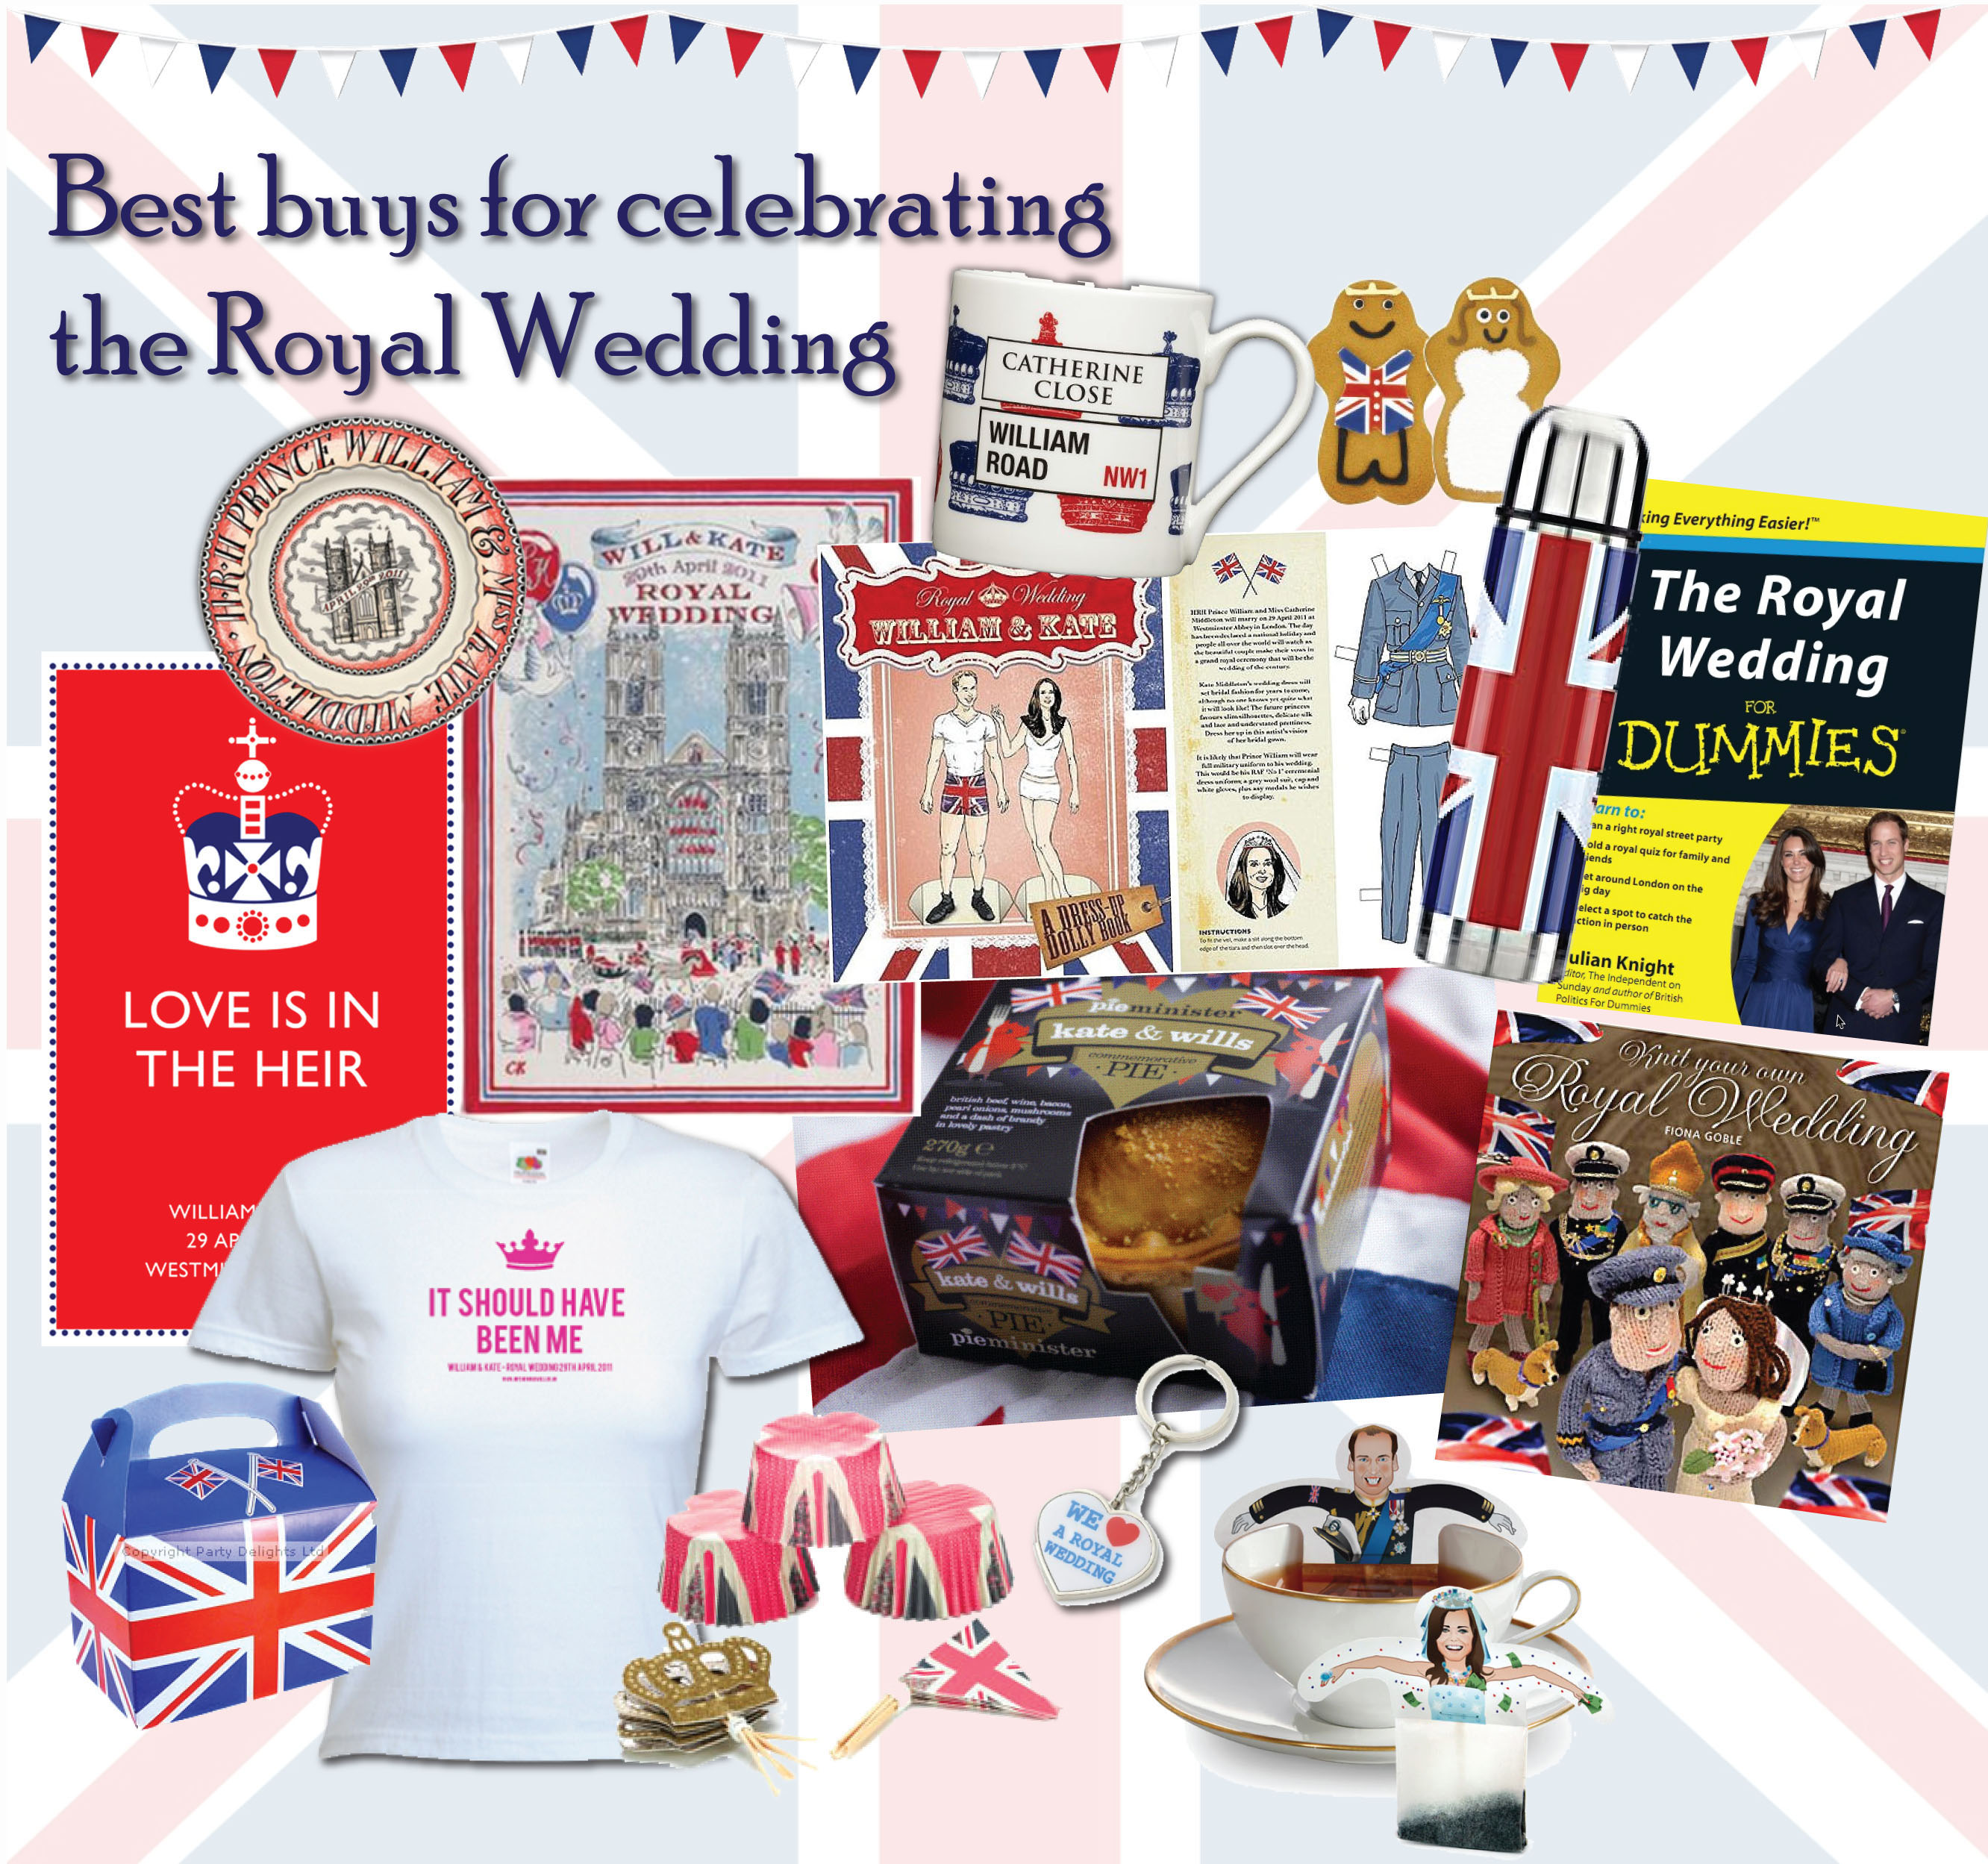 kate middleton and prince william wedding memorabilia. Royal Wedding Prince William